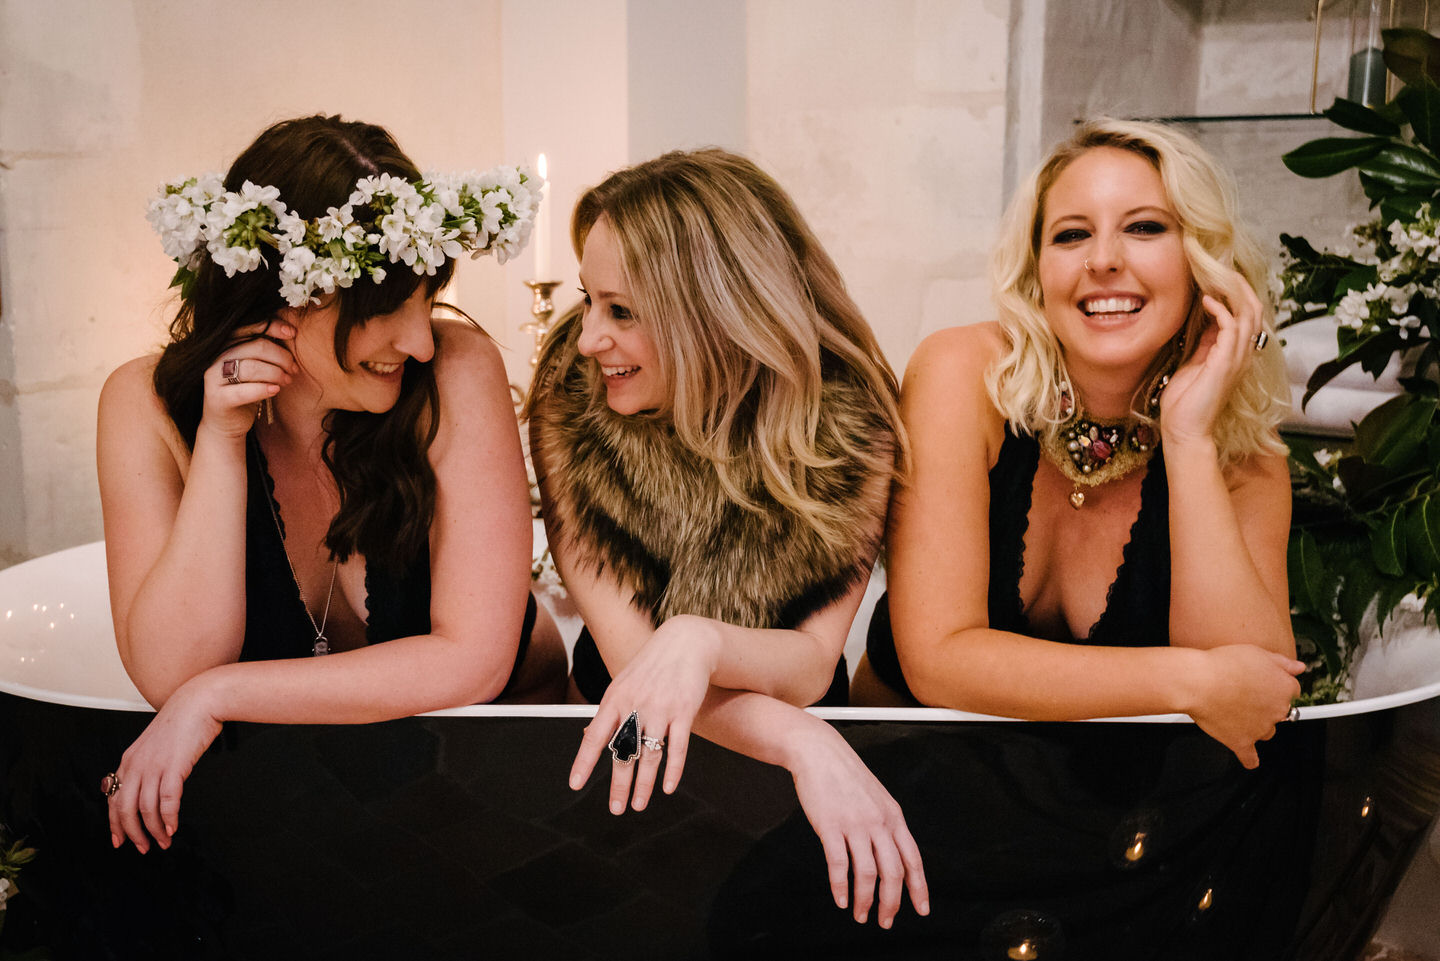 Girlfriends photographed by Your Paris Moment Boudoir photo shoot